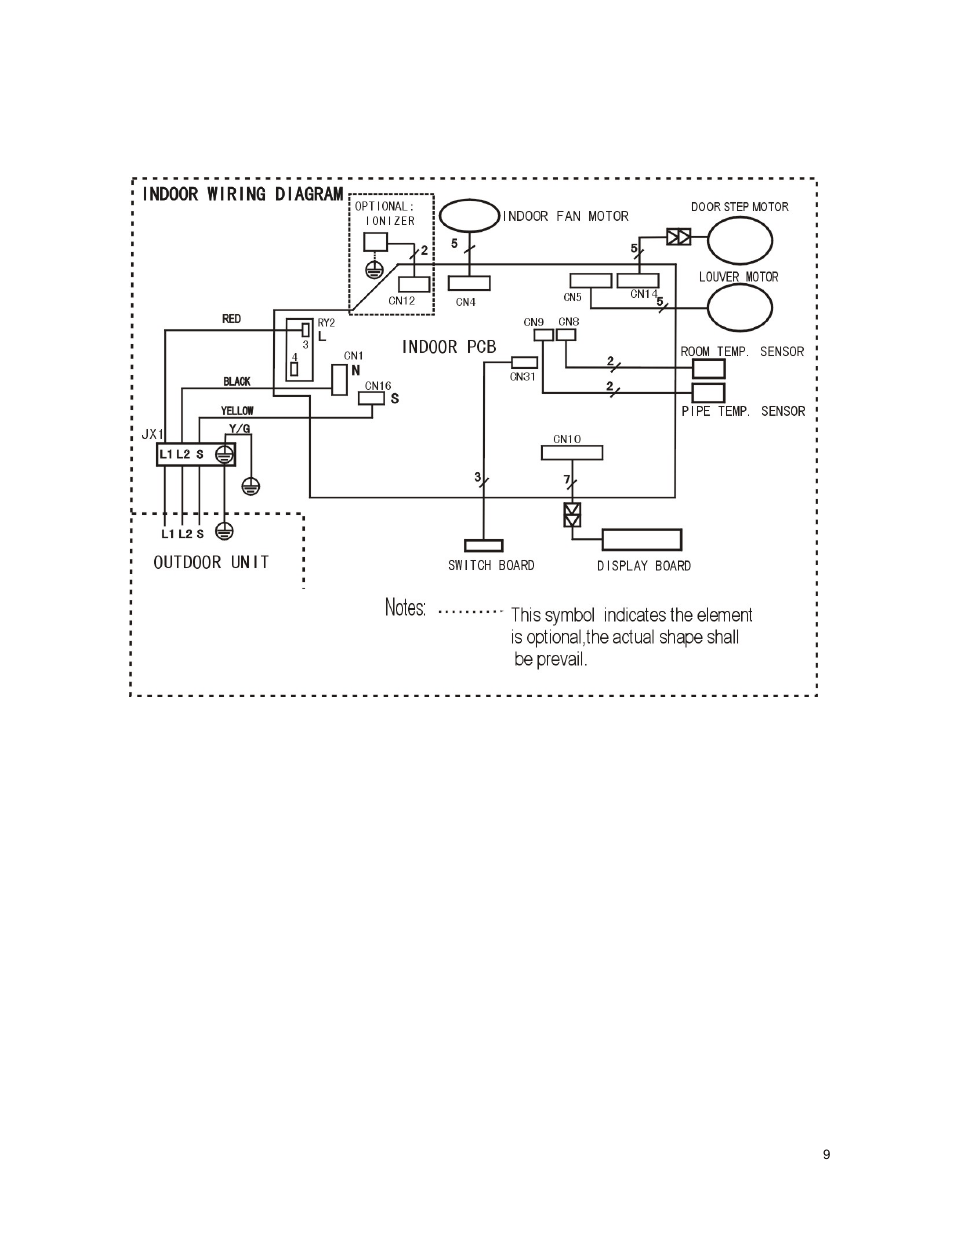 hight resolution of wiring diagram 1 indoor unit klimaire ksim series service manual user manual page